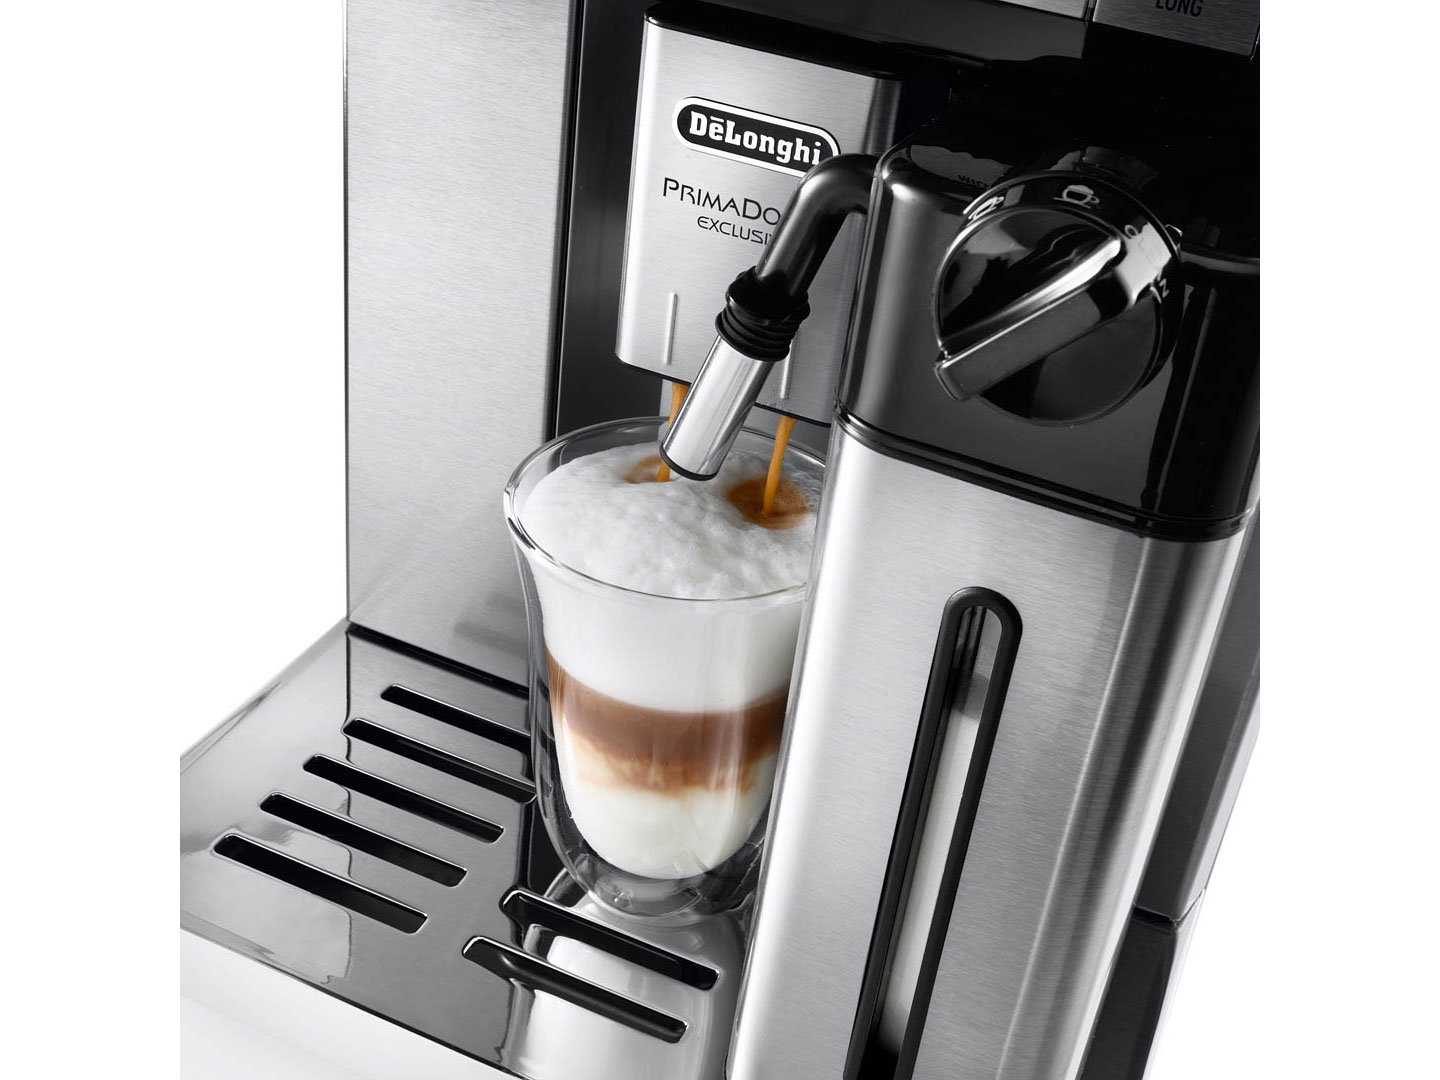 Delonghi Esam6900 Prima Donna Exclusive One Touch Espresso